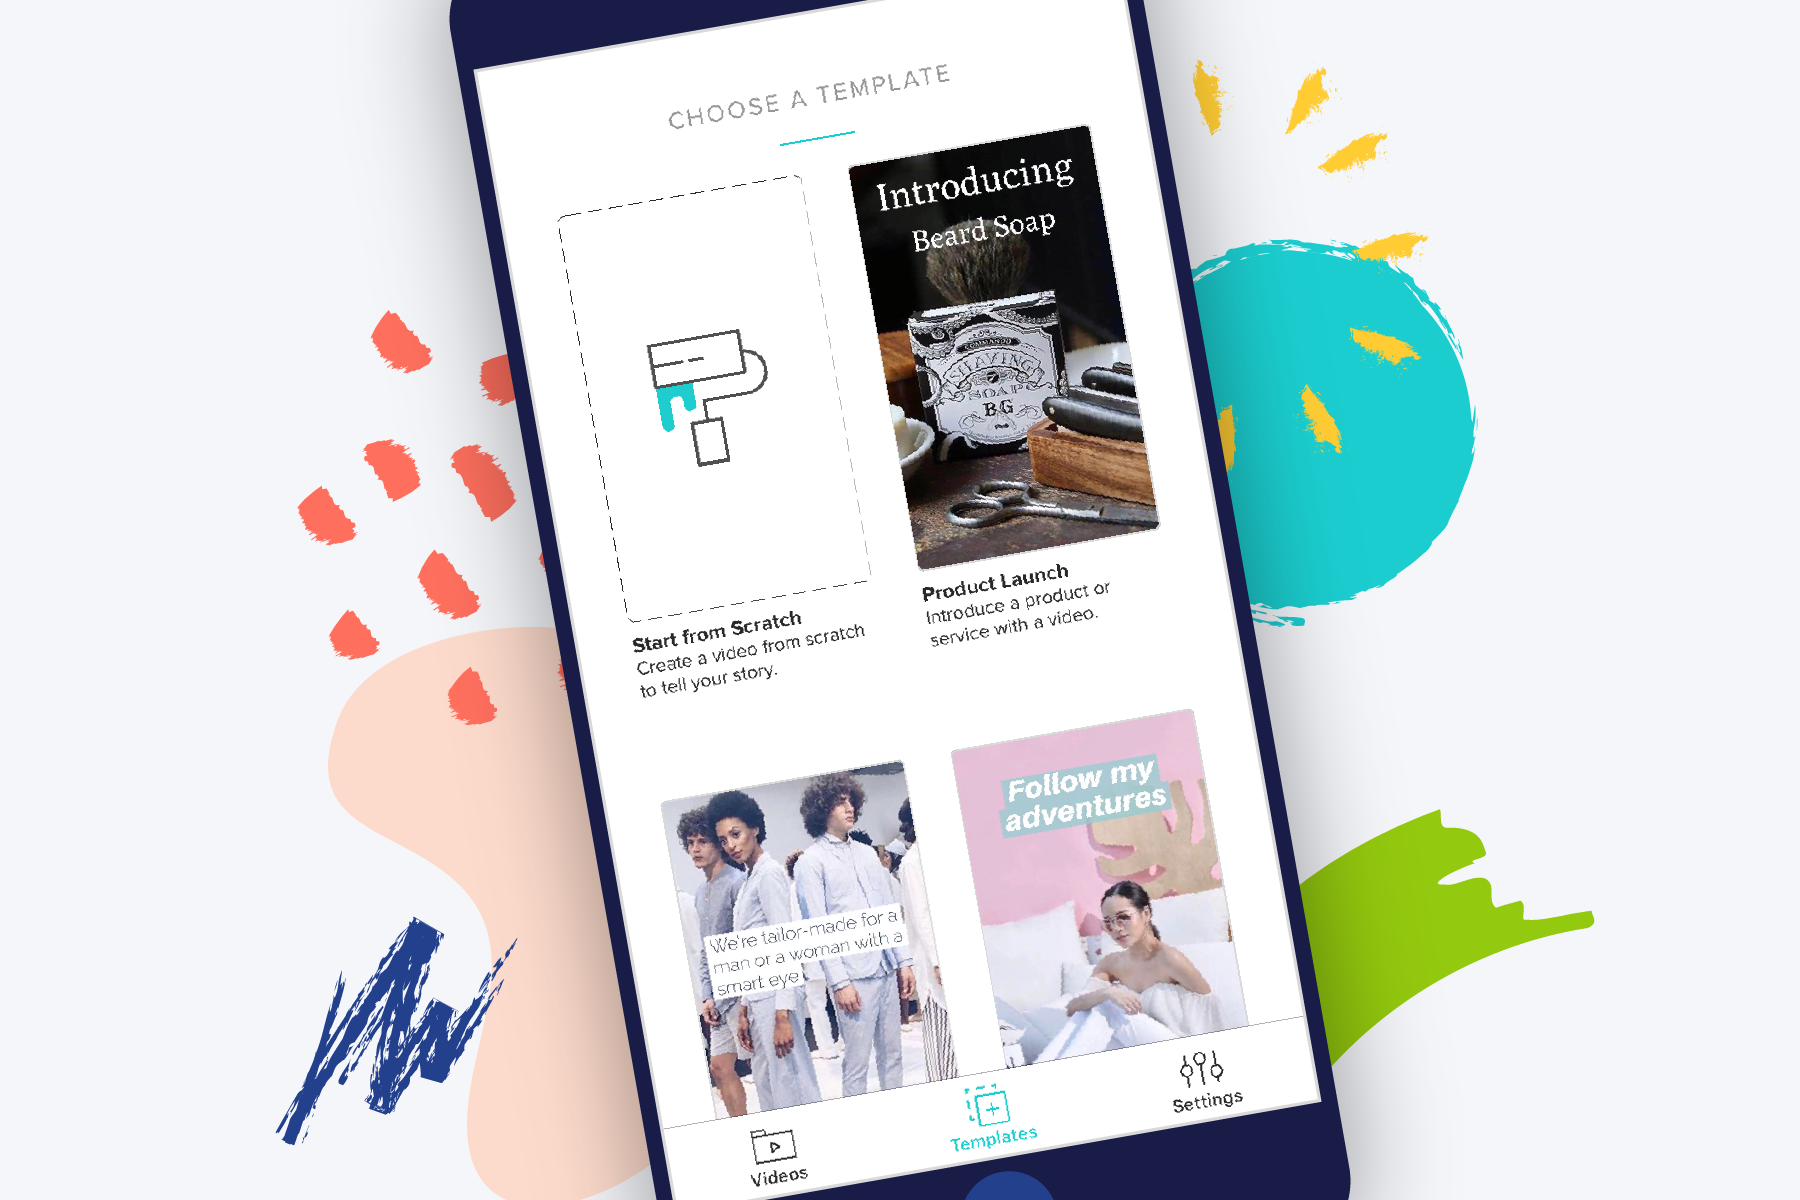 Introducing Our New iOS App for Instagram Stories - Animoto